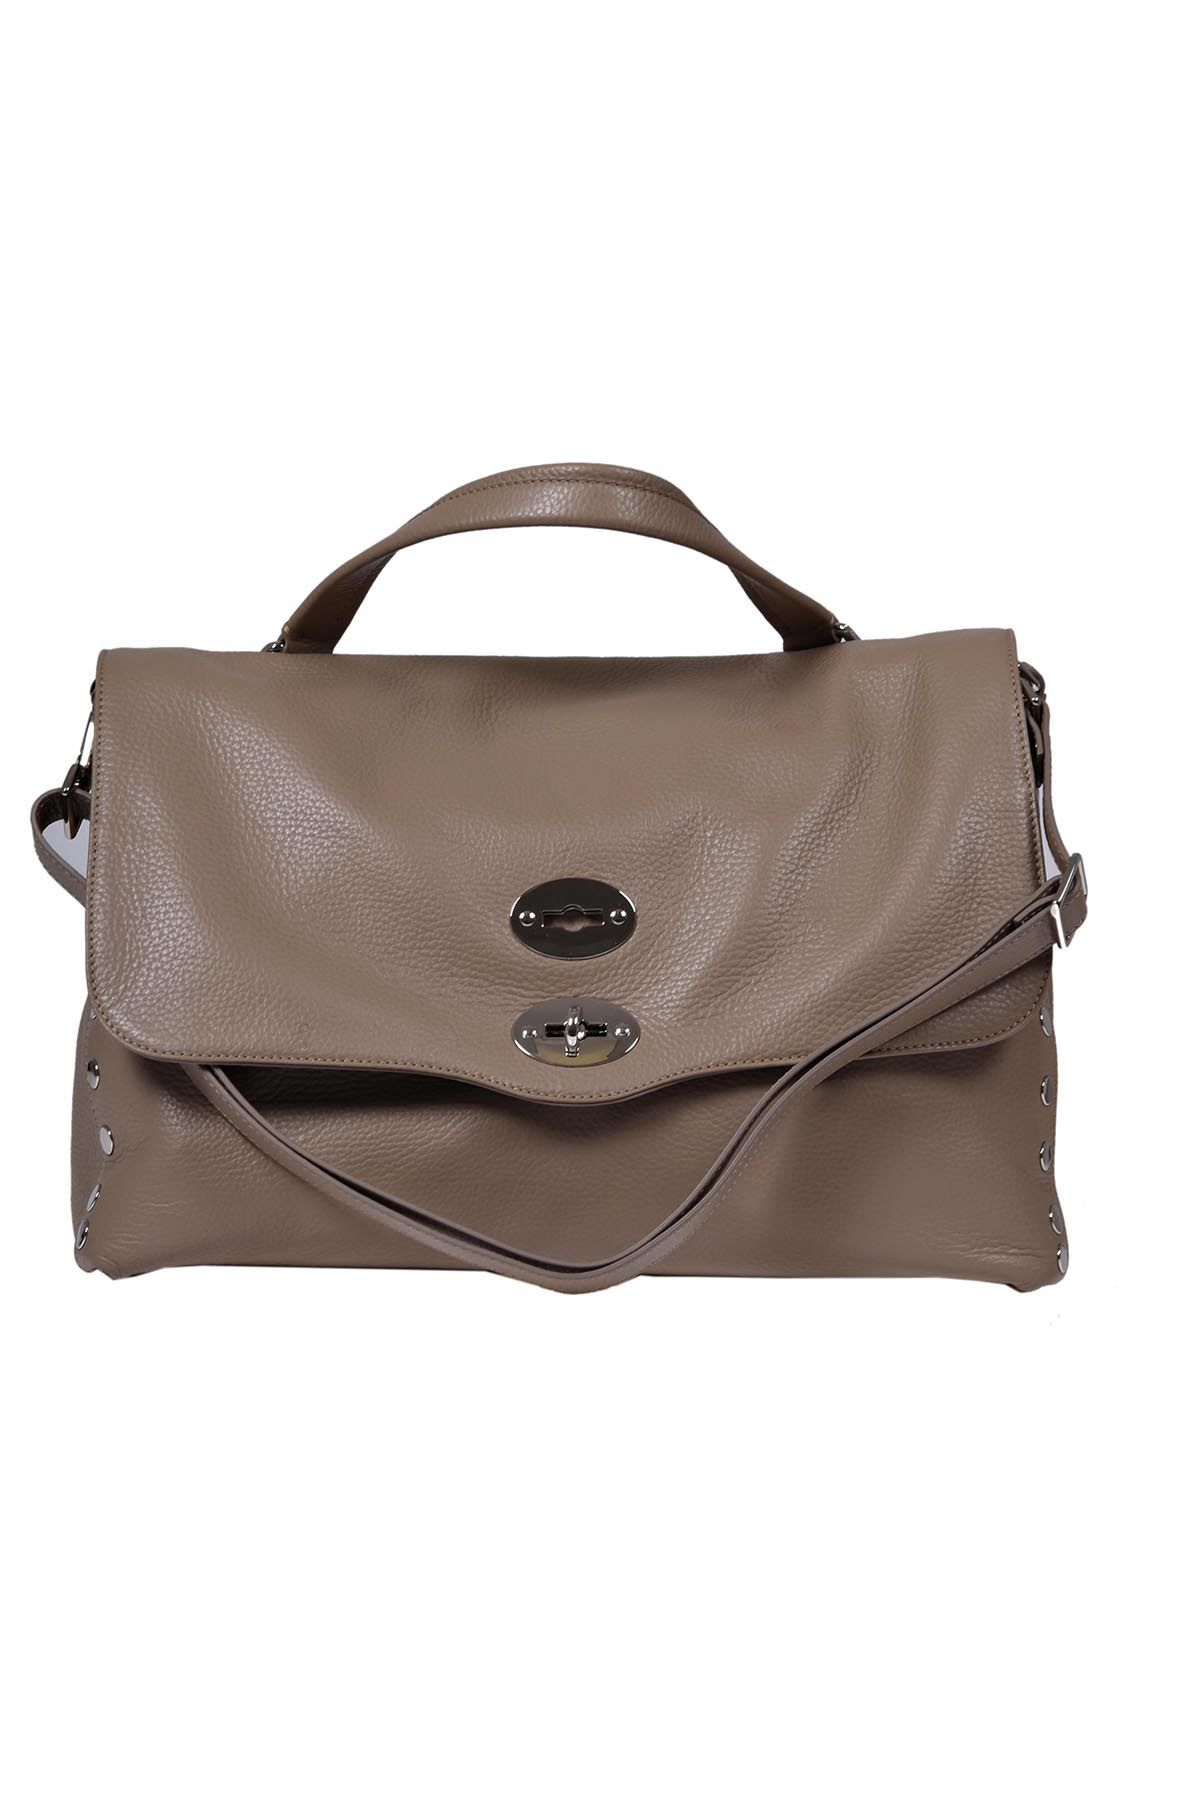 Zanellato Postina M Daily dark brown bag Ufa9VLBzX